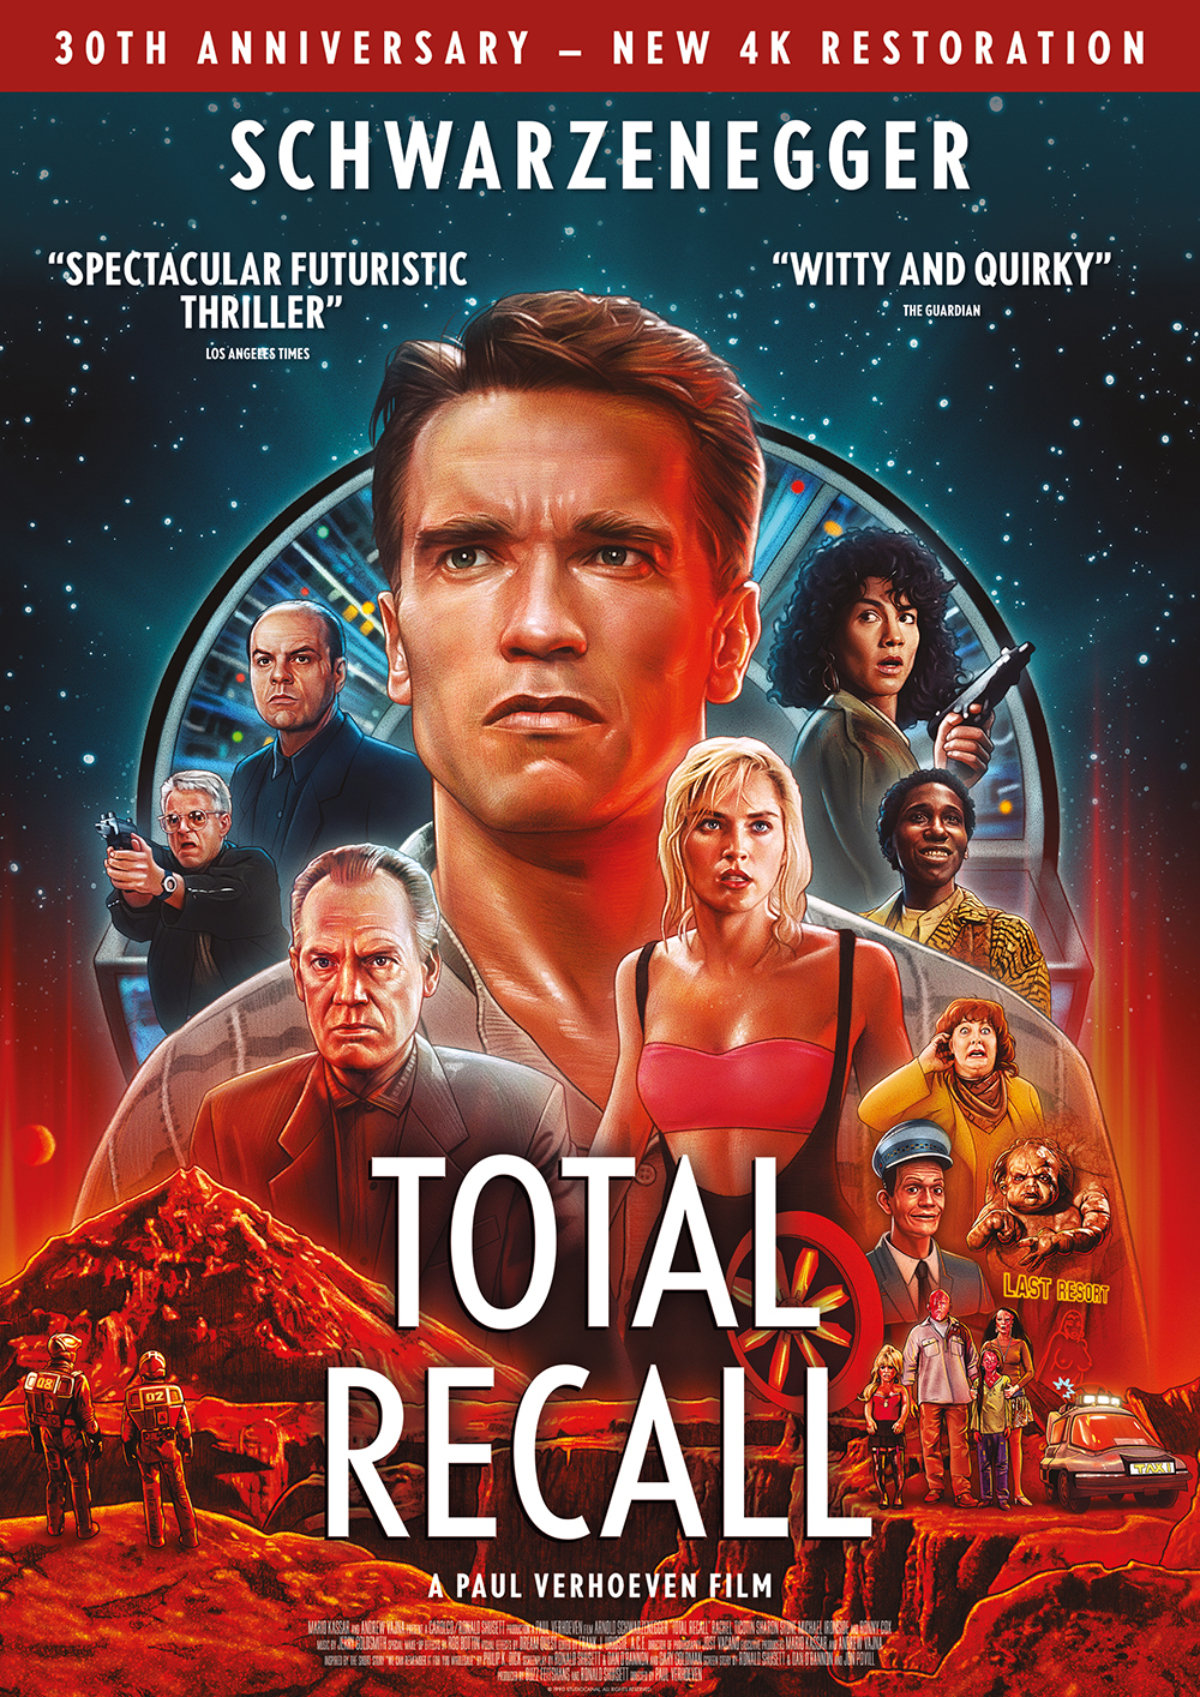 'Total Recall' movie poster